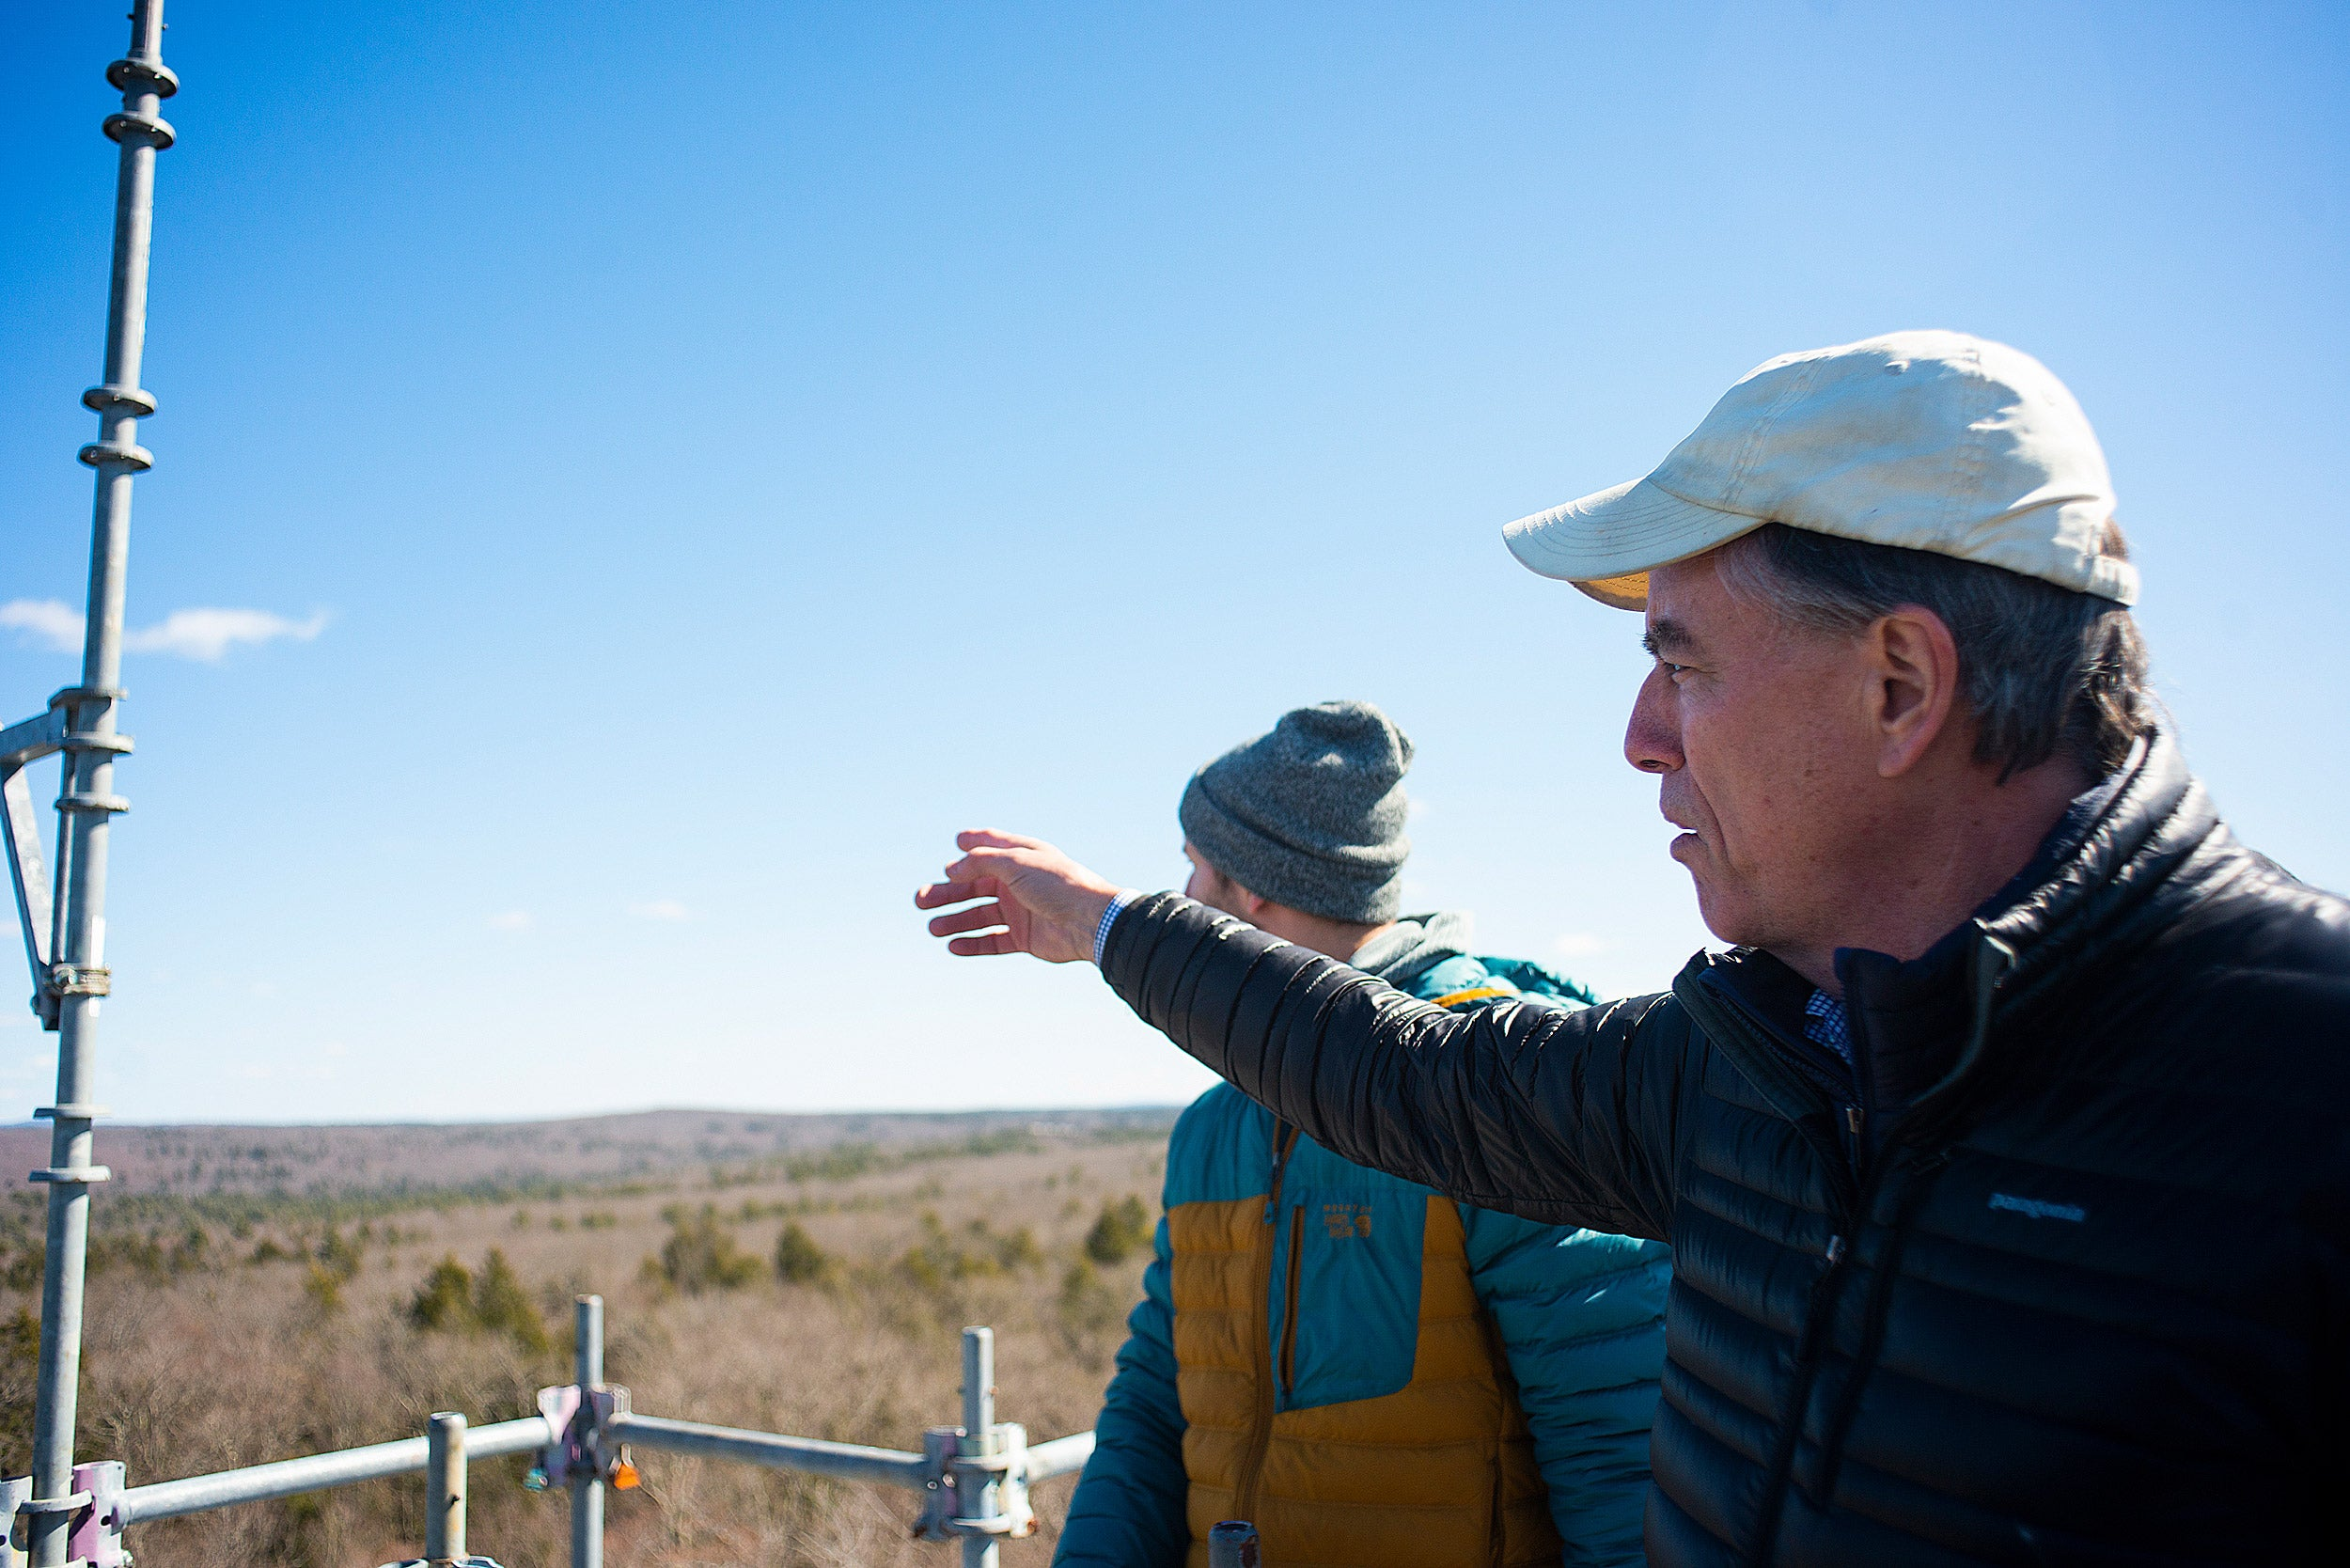 David Foster surveys Harvard Forest from atop a tower.